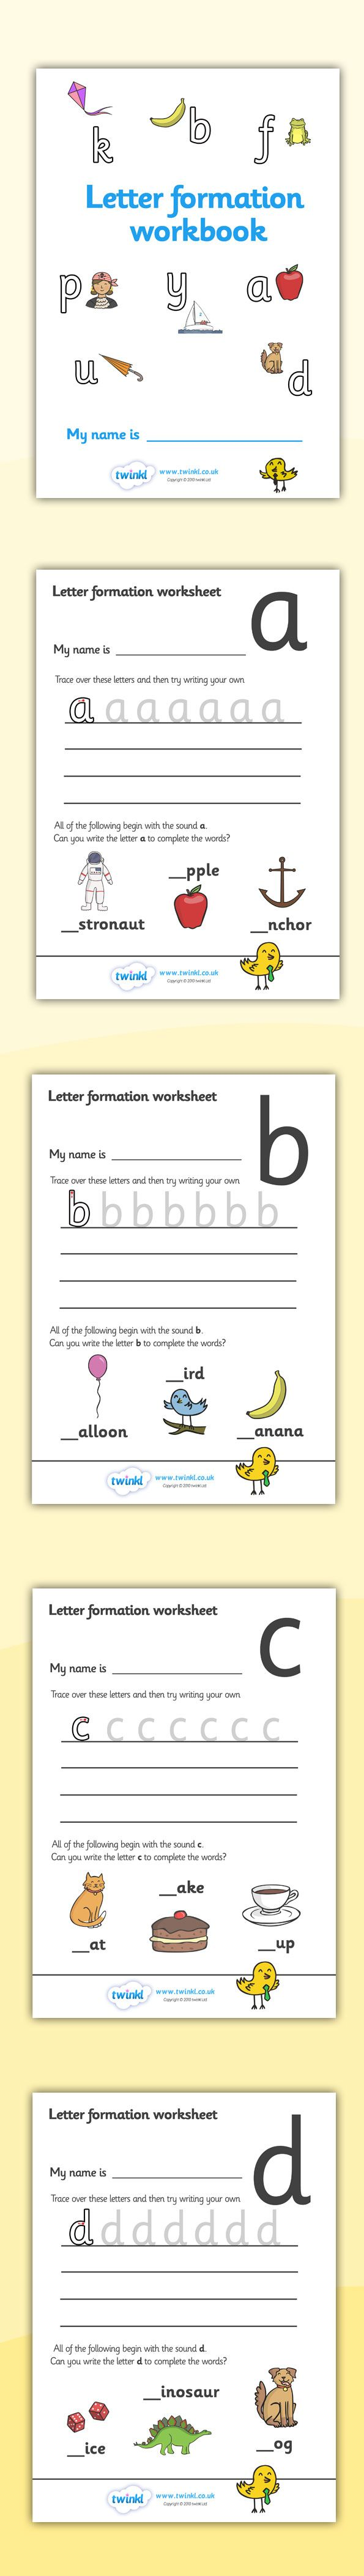 Twinkl Resources >> Letter Formation Workbook >> Printable resources for Primary, EYFS, KS1 and SEN. Thousands of classroom displays and teaching aids! Literacy, English, Letter Formation, Workbooks